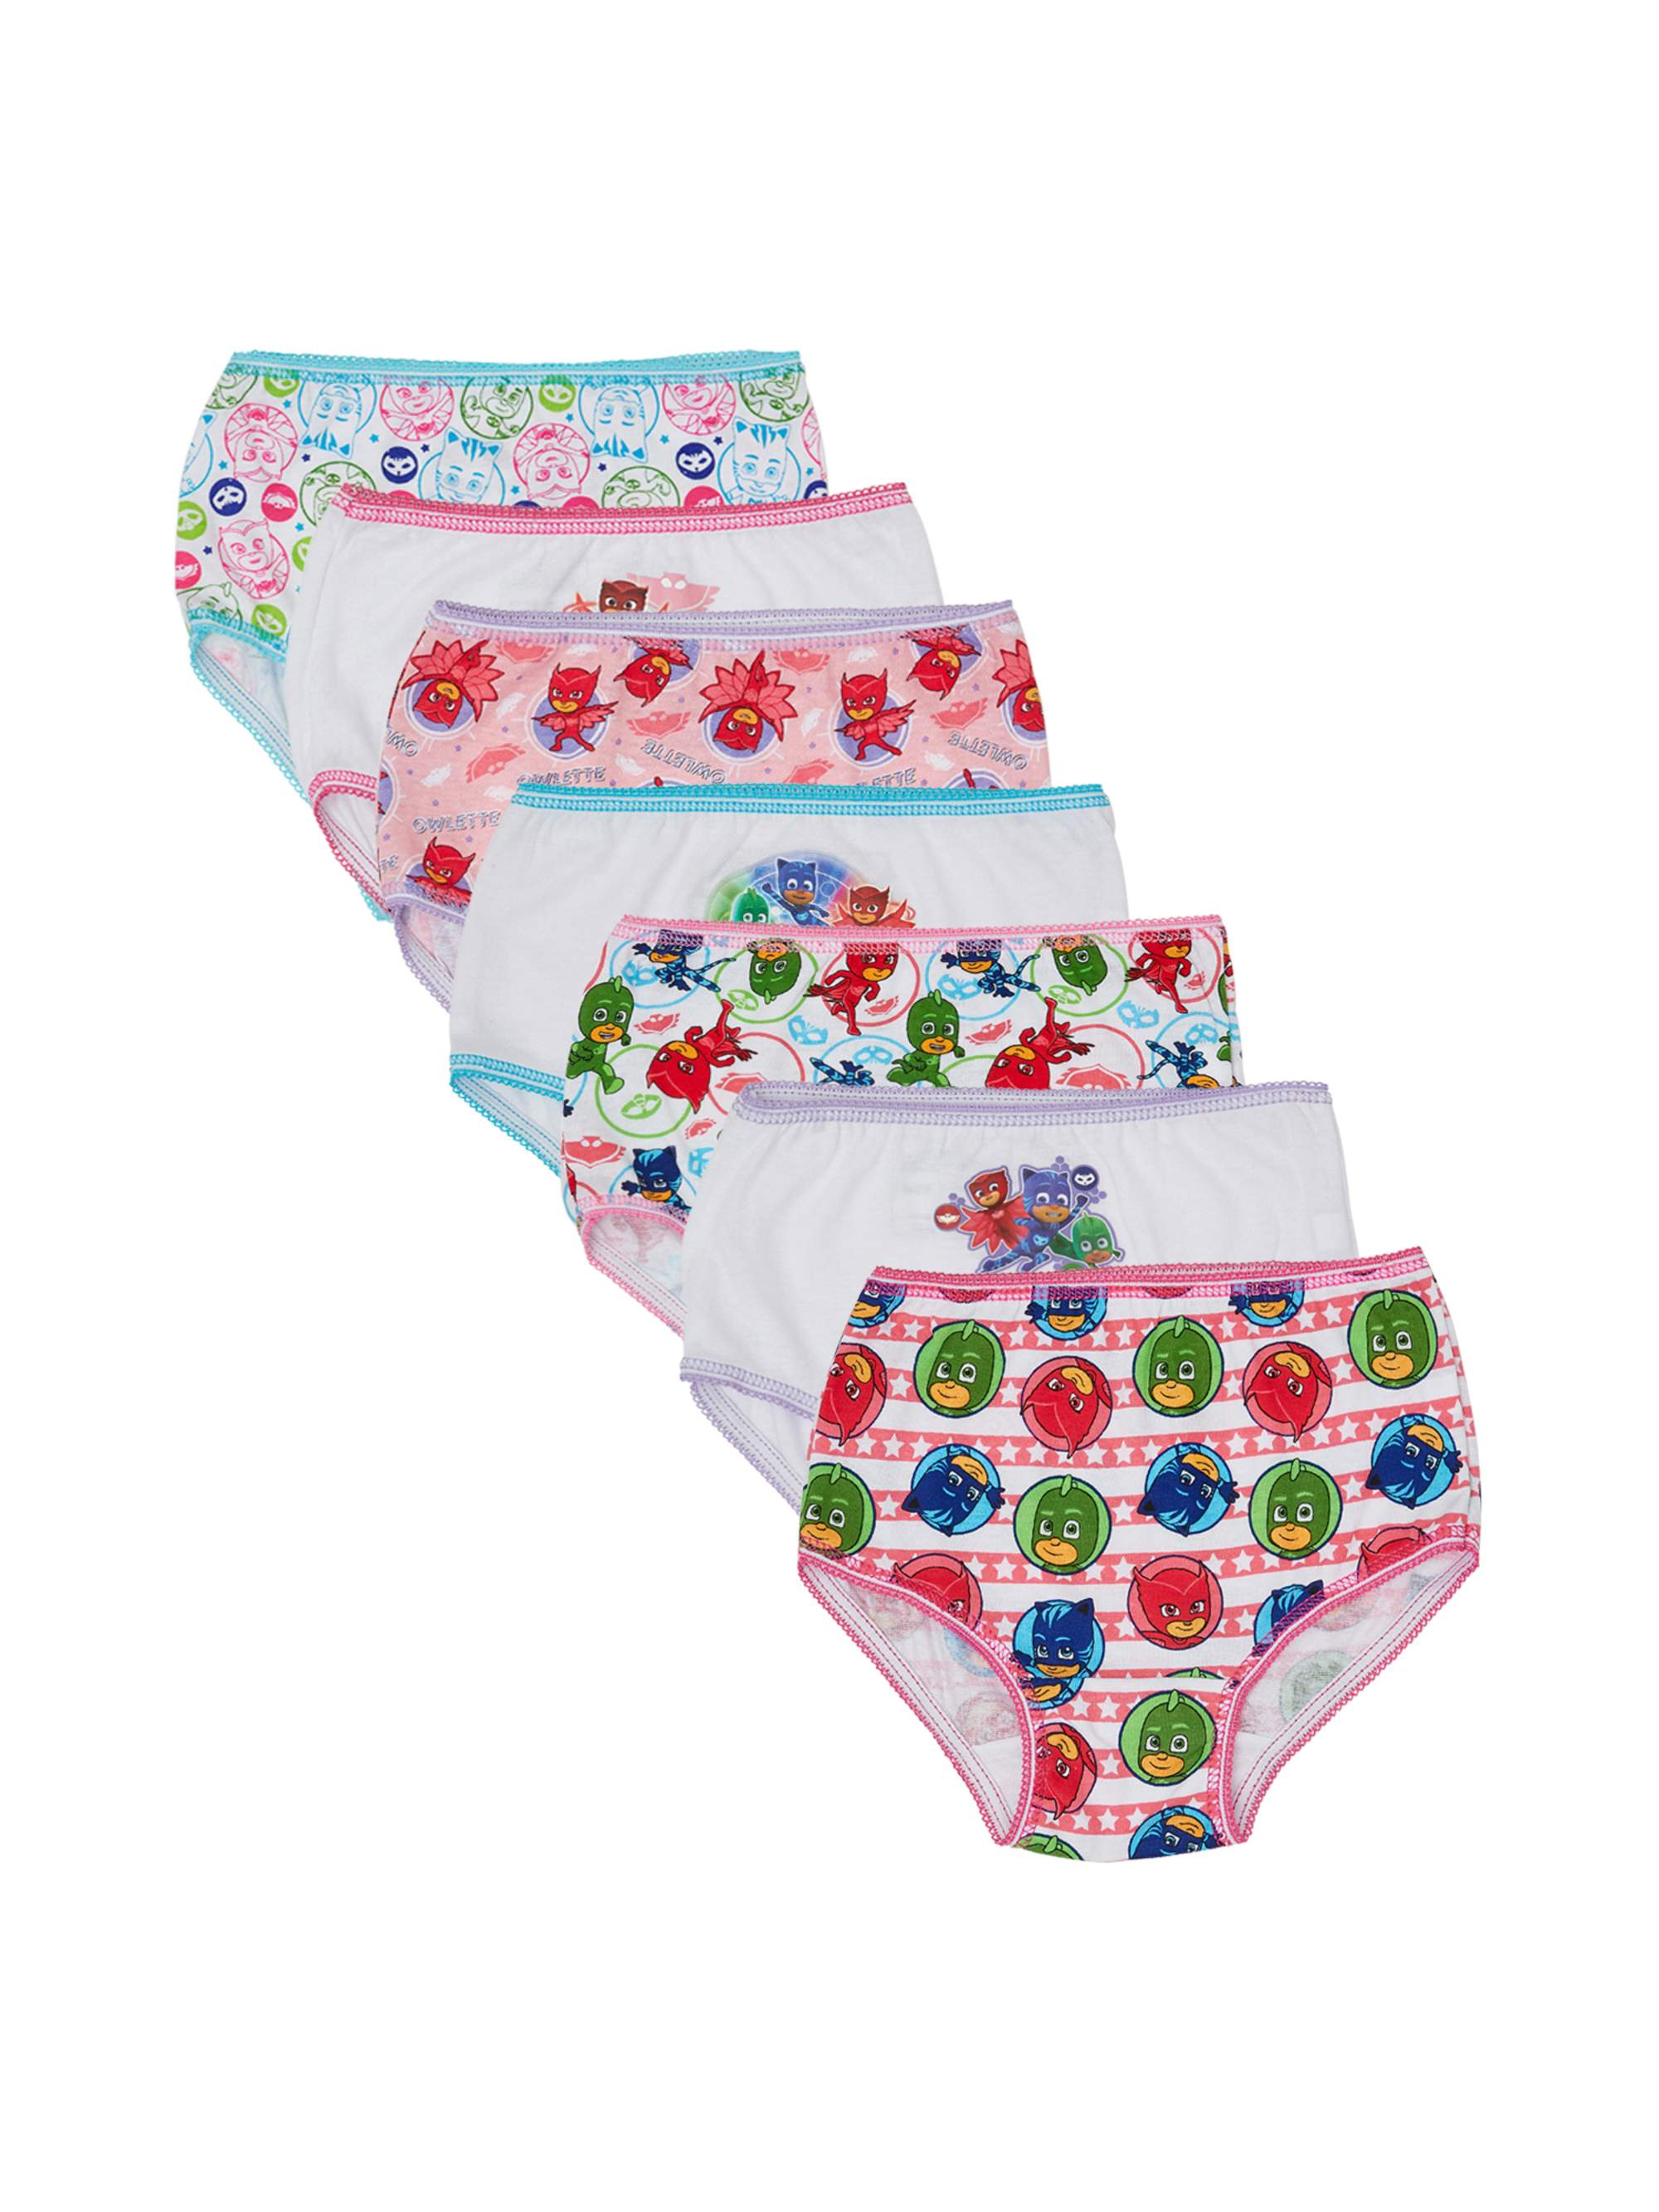 Toddler Girl Underwear, 7-pack